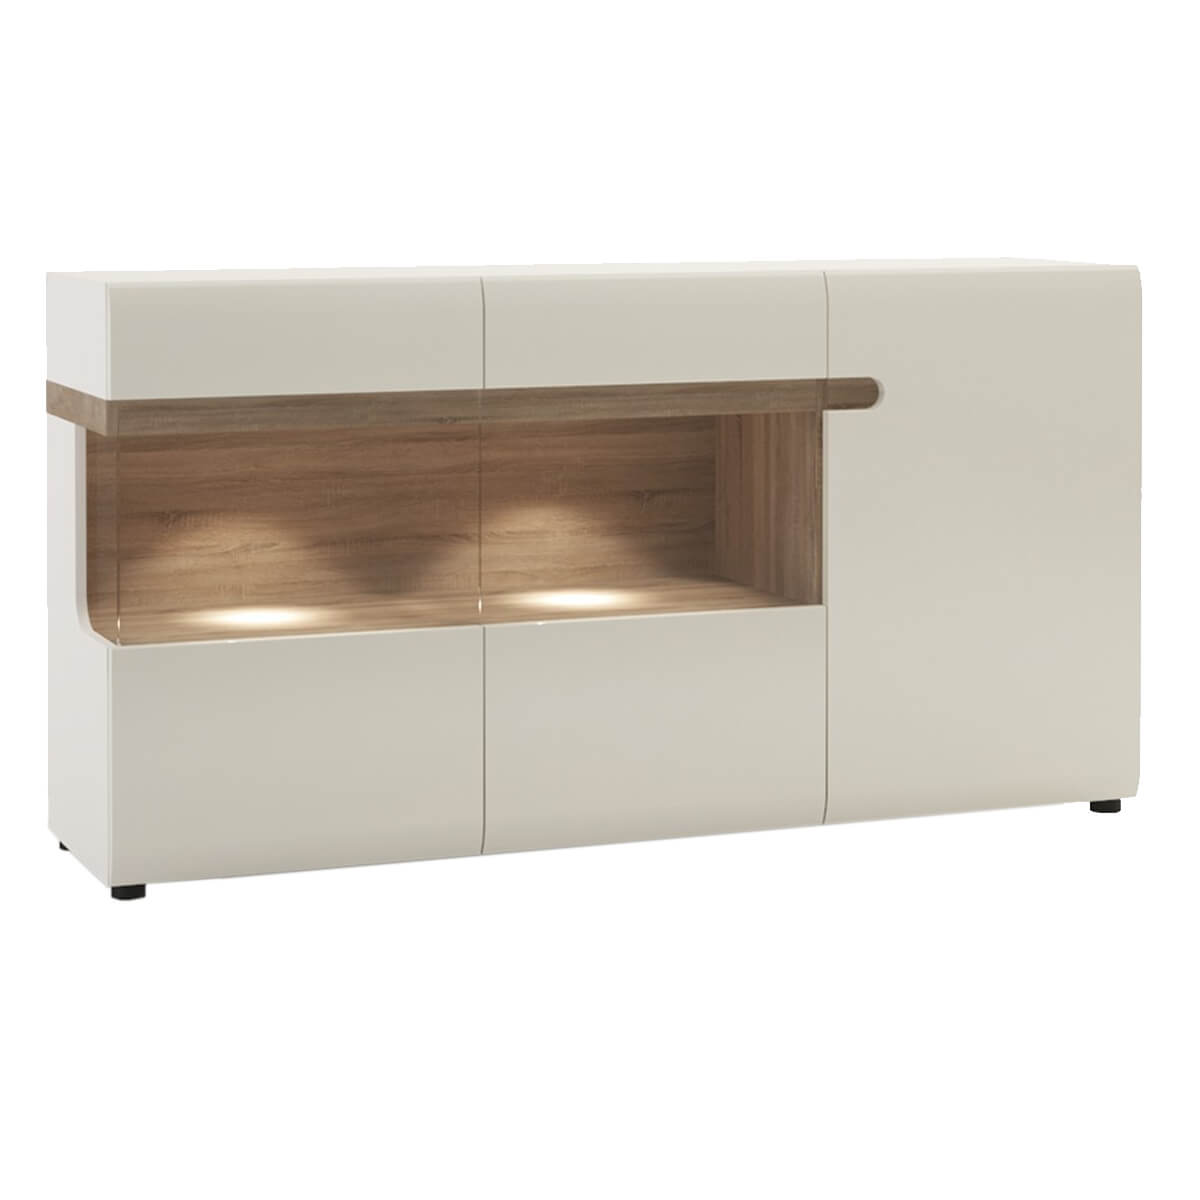 Mode 3 Door Glazed Sideboard White Gloss & Truffle Oak